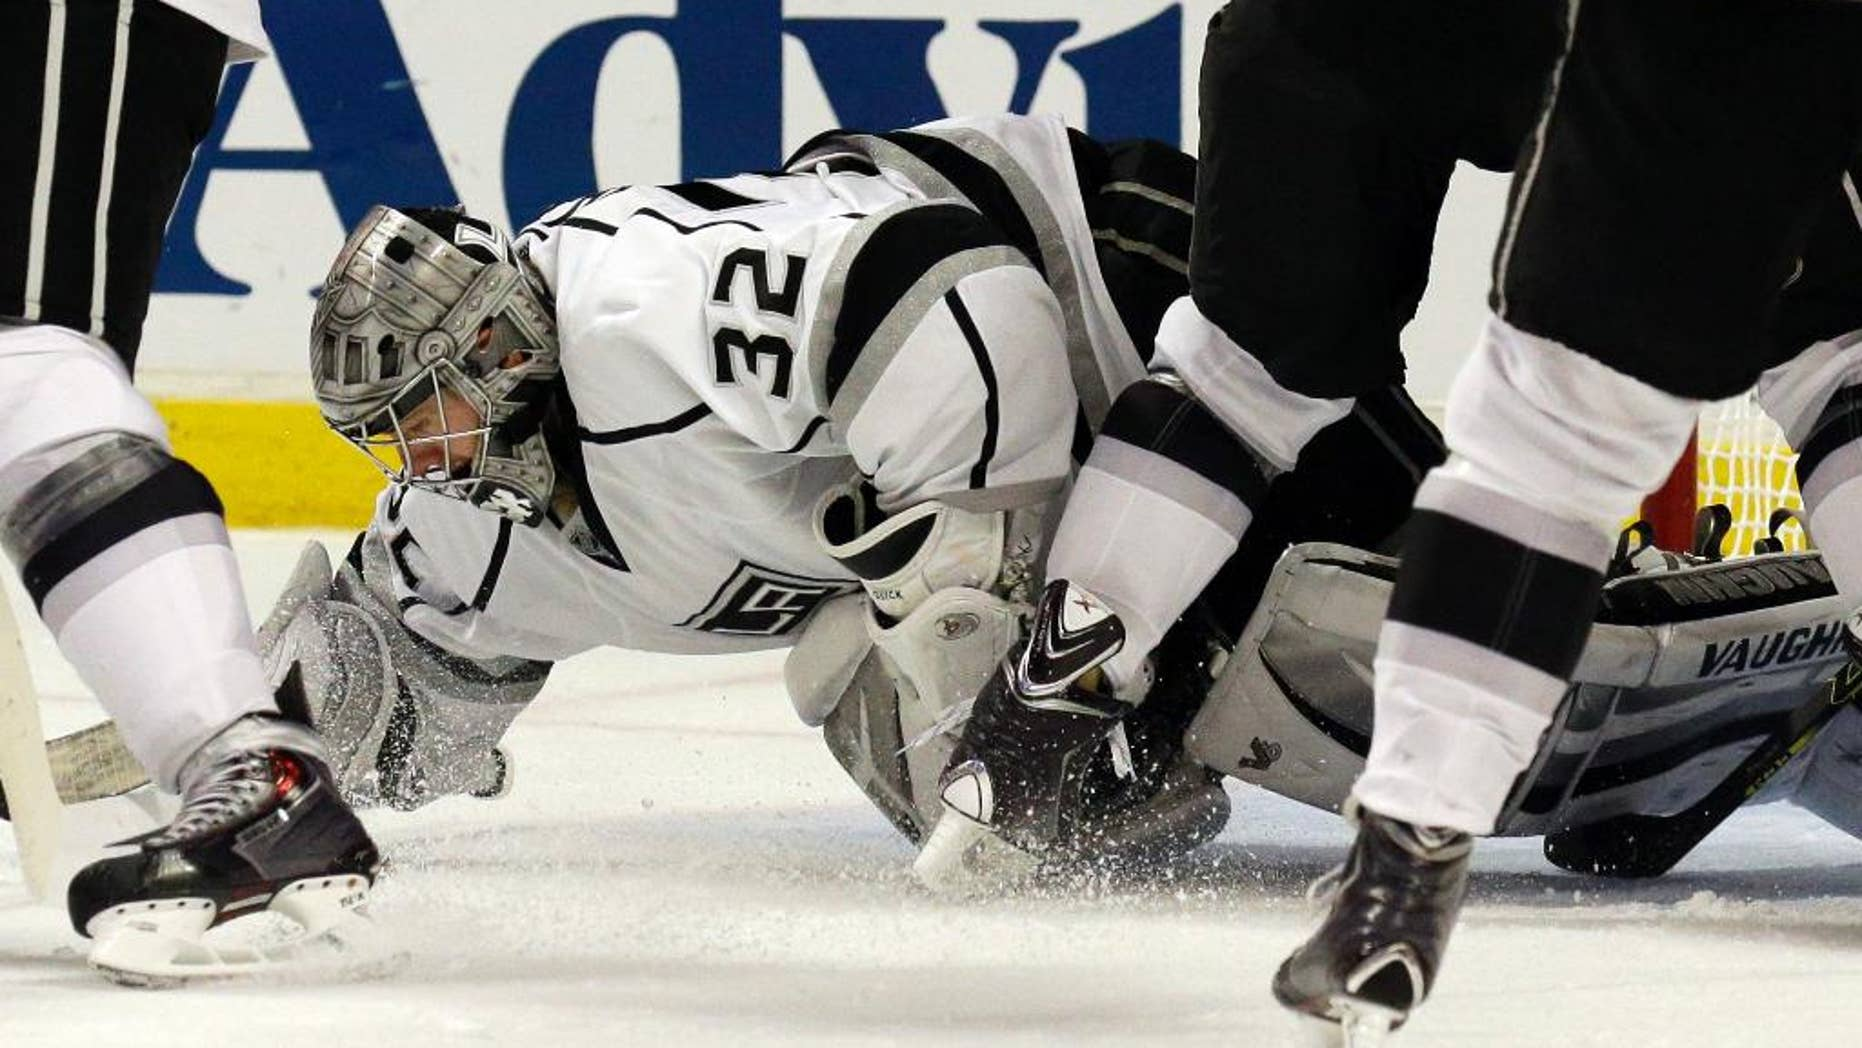 Los Angeles Kings goalie Jonathan Quick (32) saves a shot by Chicago Blackhawks' Michal Handzus (26) during the second period in Game 2 of the Western Conference finals in the NHL hockey Stanley Cup playoffs in Chicago on Wednesday, May 21, 2014. (AP Photo/Nam Y. Huh)